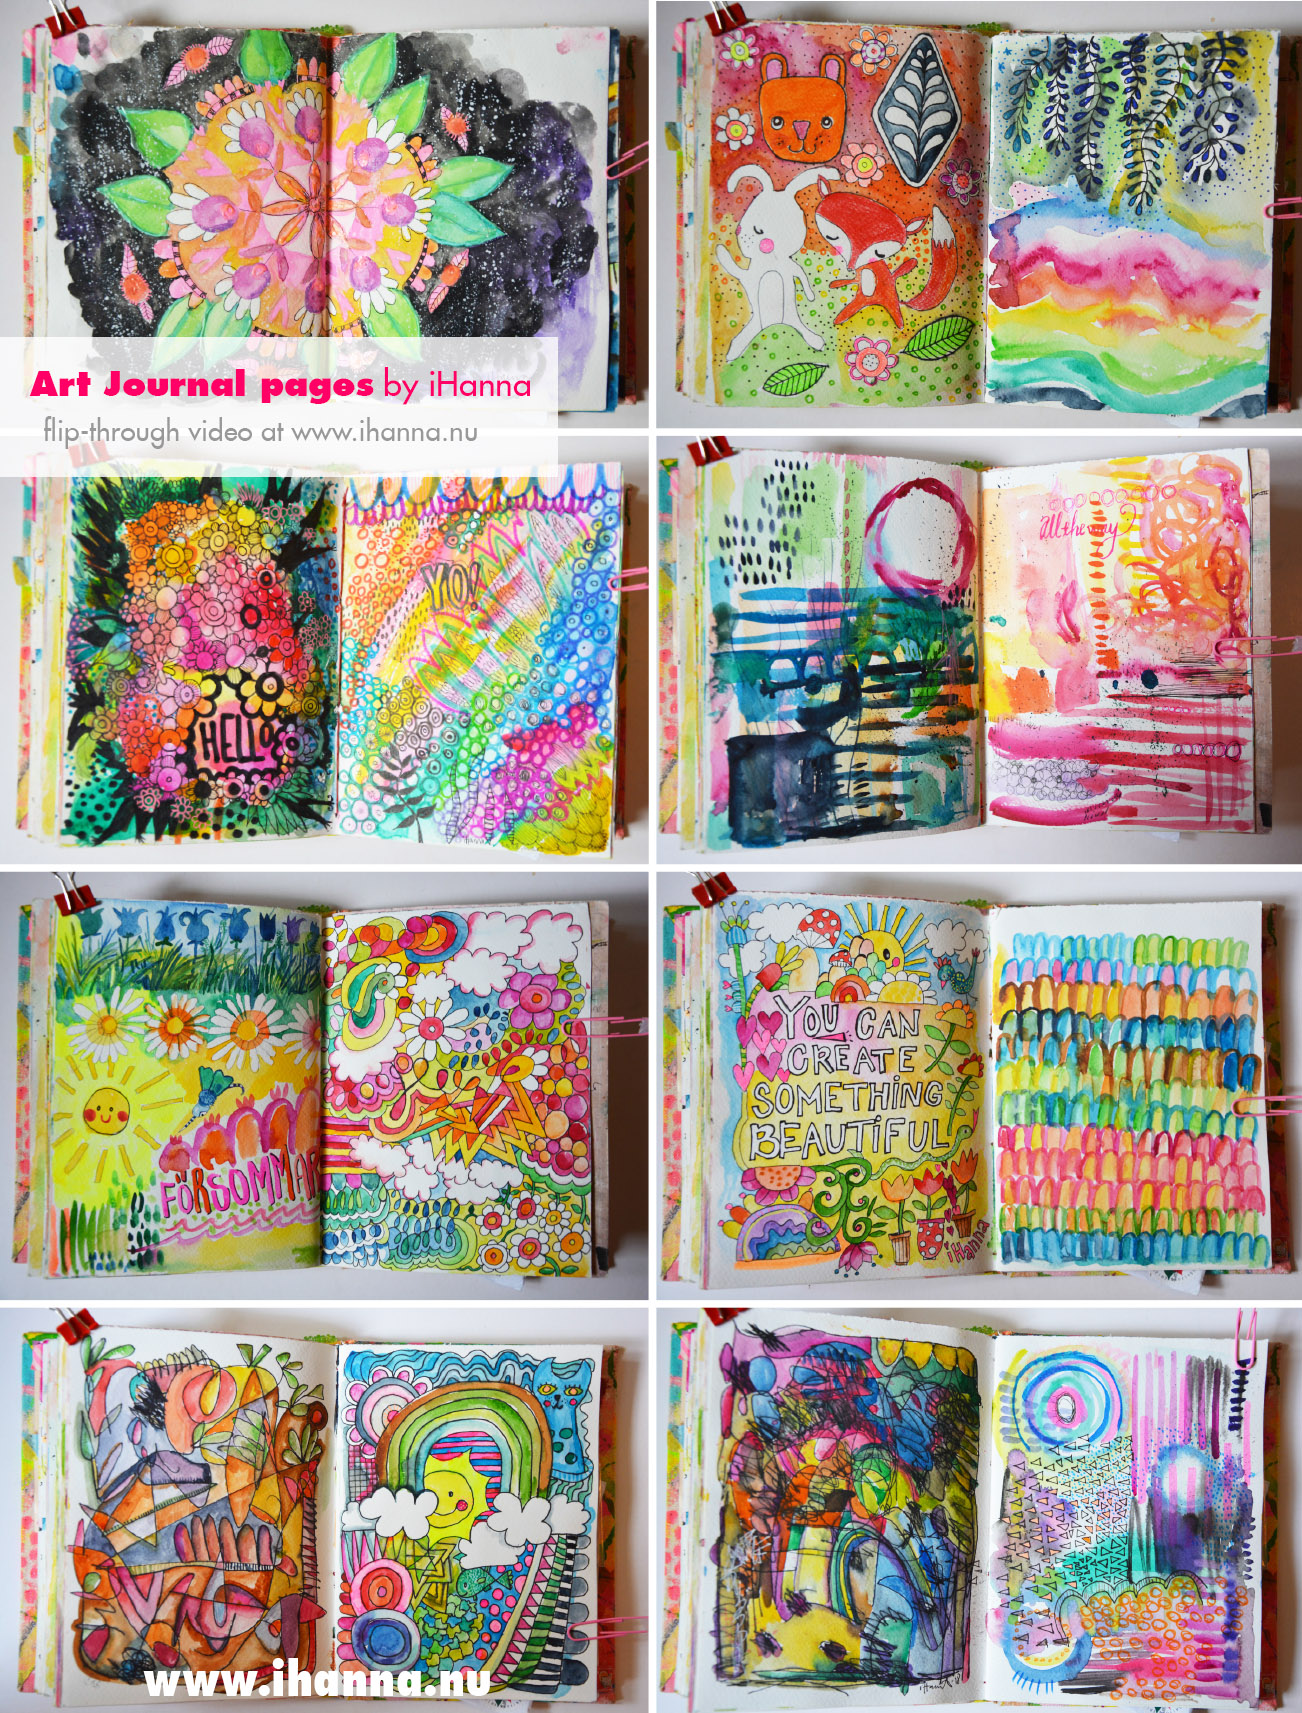 Art journal pages in watercolor by iHanna - entire flip-through on the blog www.ihanna.nu